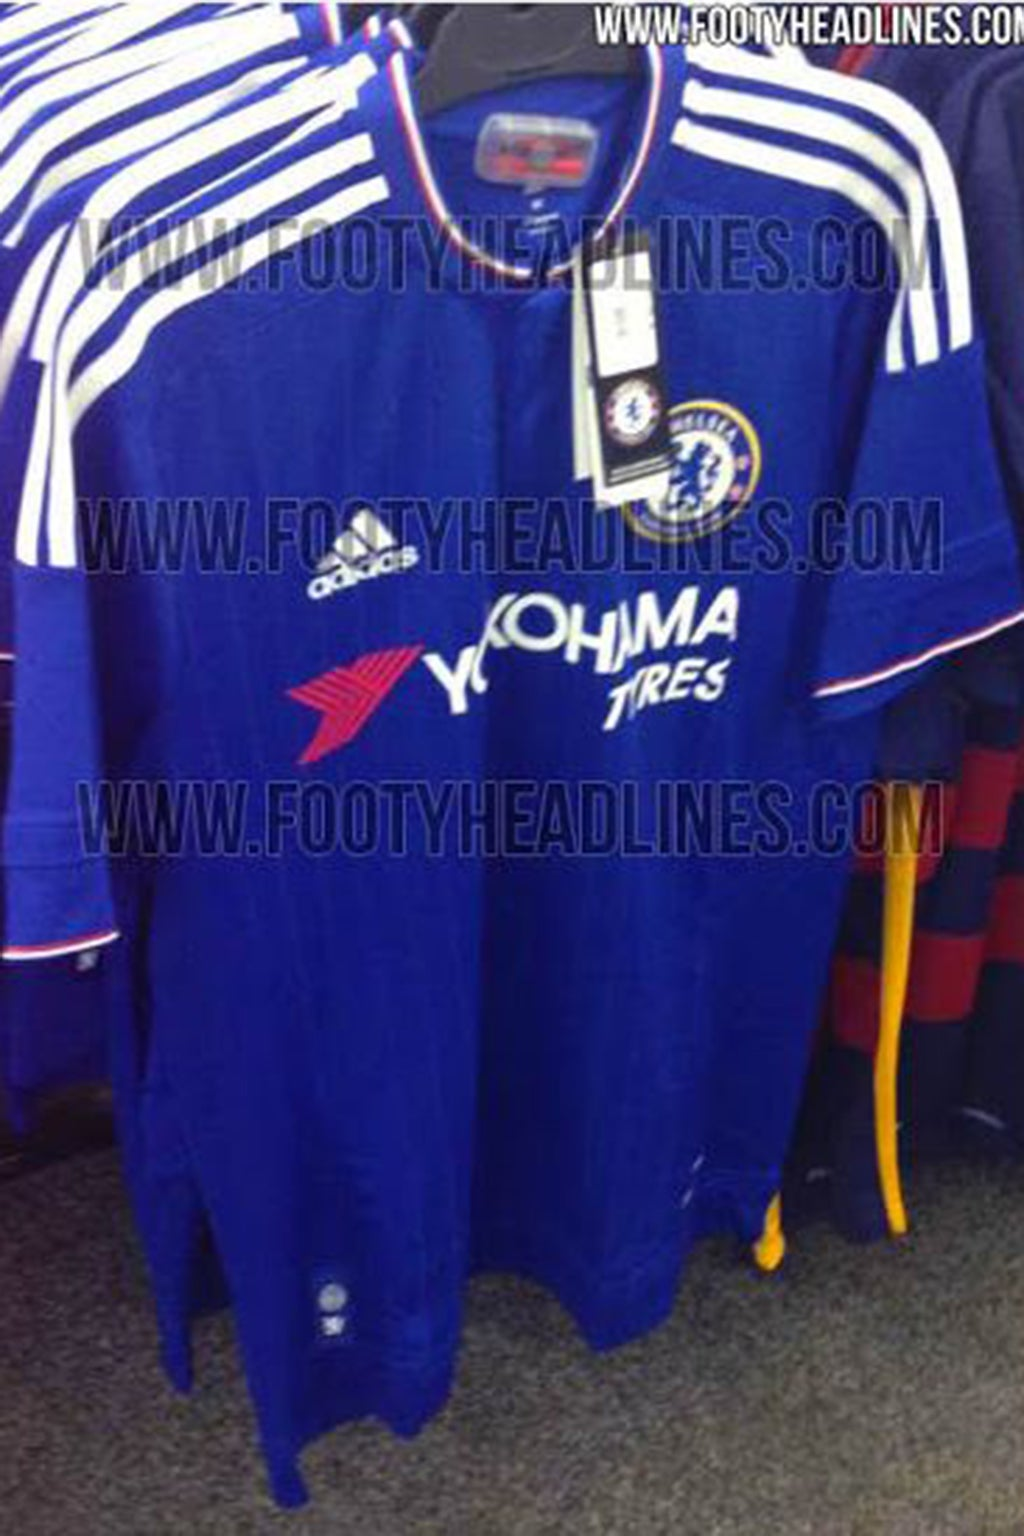 innovative design 3329f 84b0c Chelsea 2015/16 home shirt leaked again as new picture ...